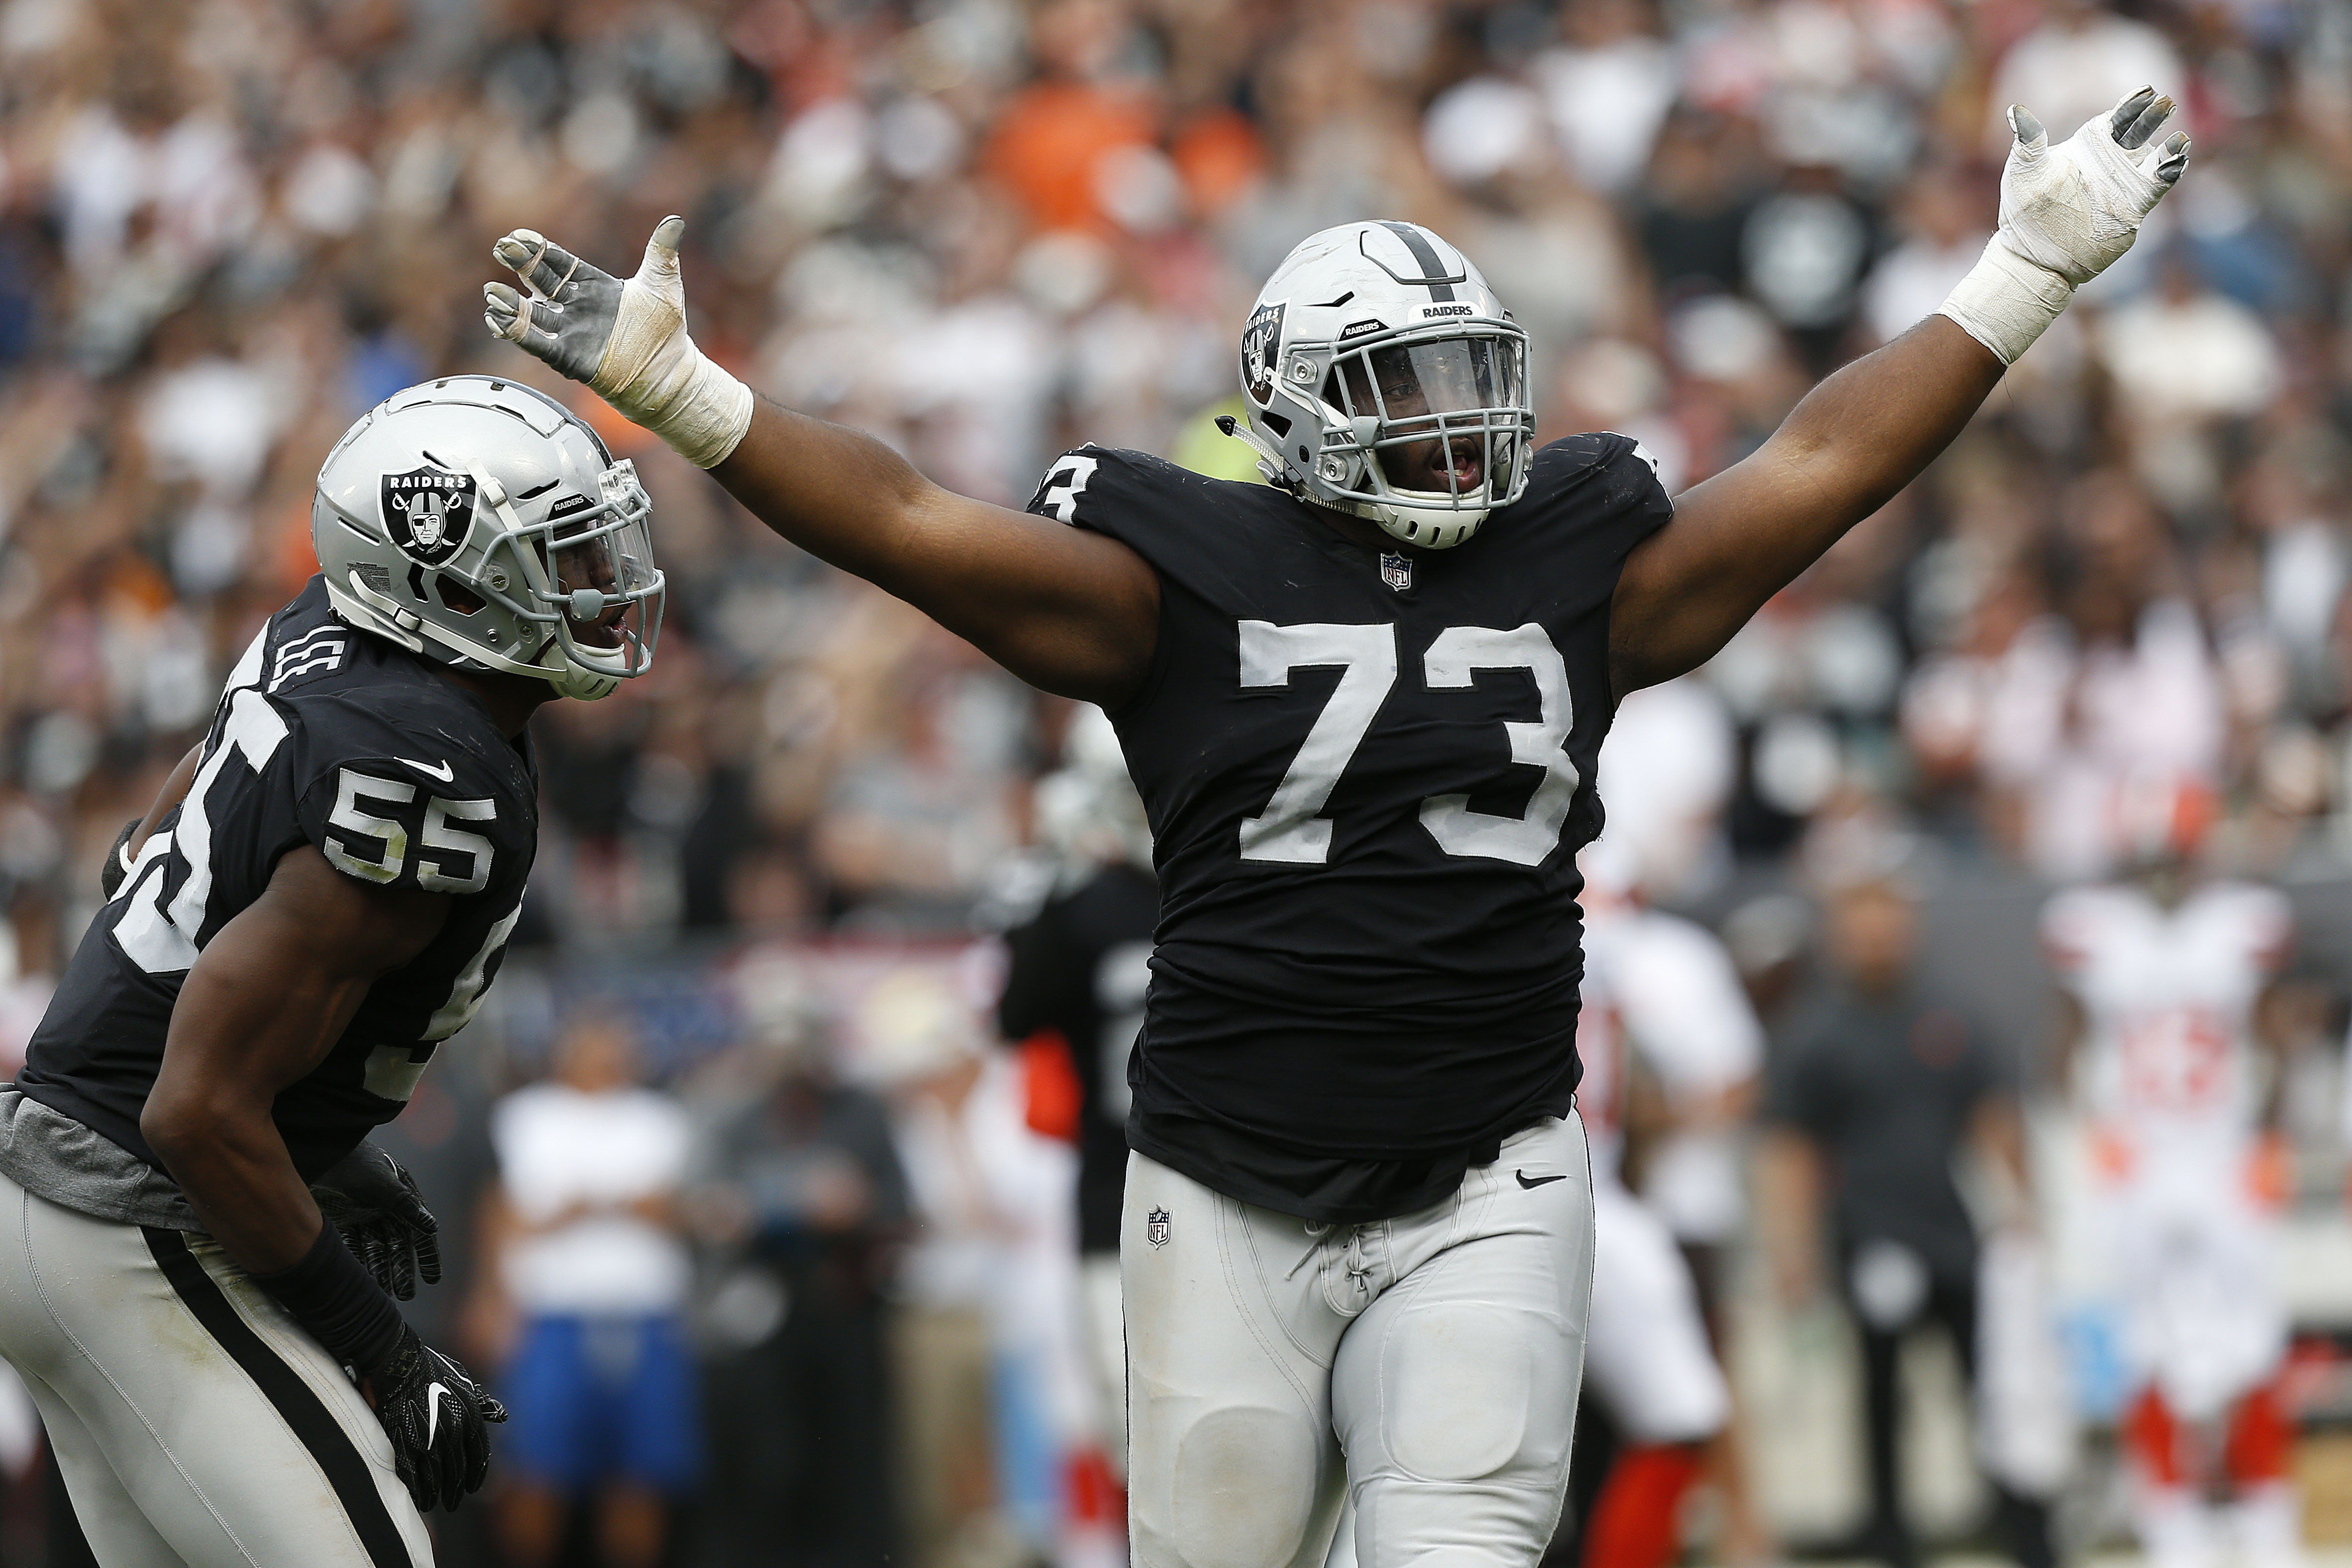 NFL: Cleveland Browns at Oakland Raiders